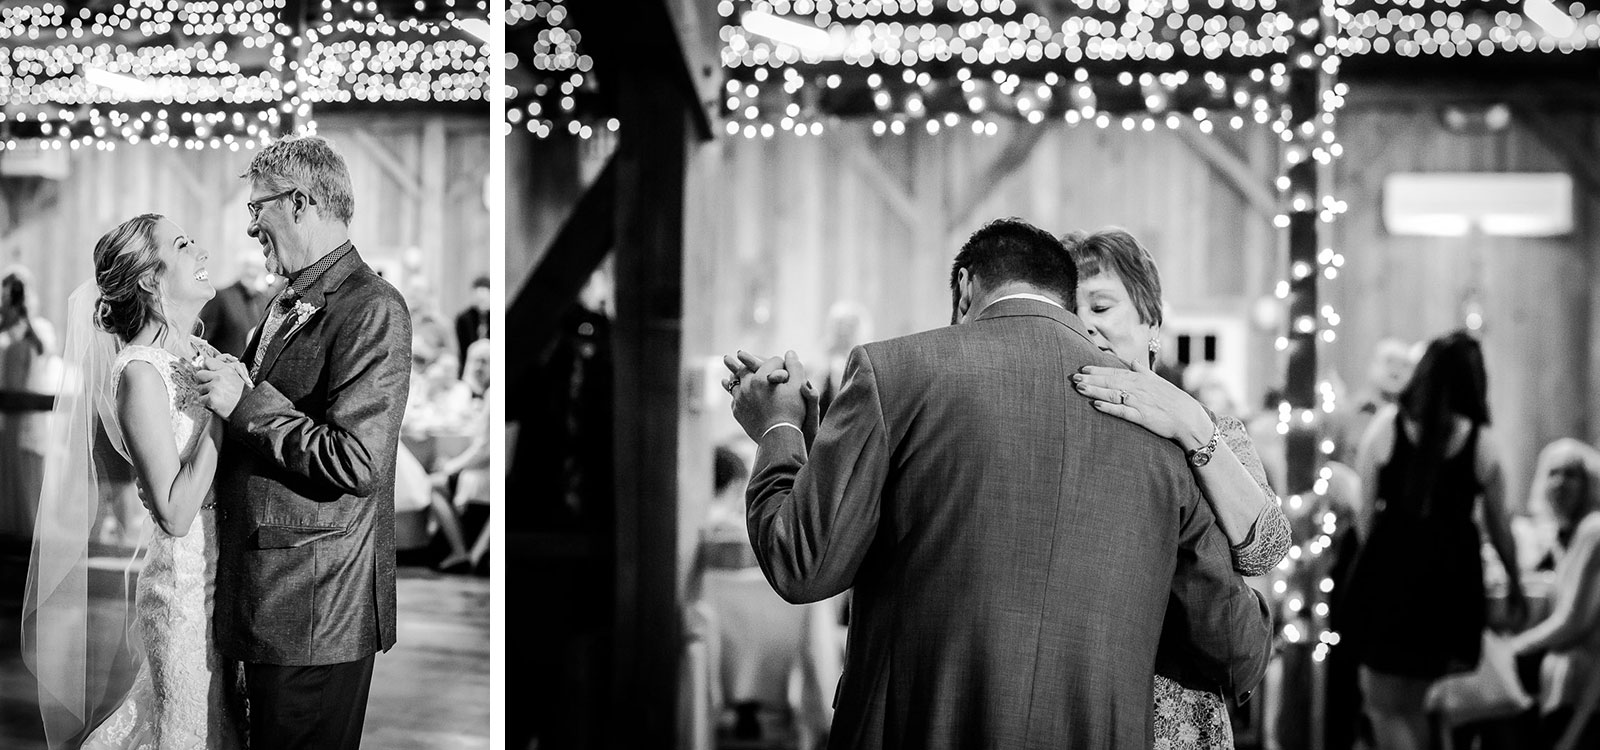 Eric_and_Christy_Photography_Blog_Wedding_Kelly_Matt-71-72